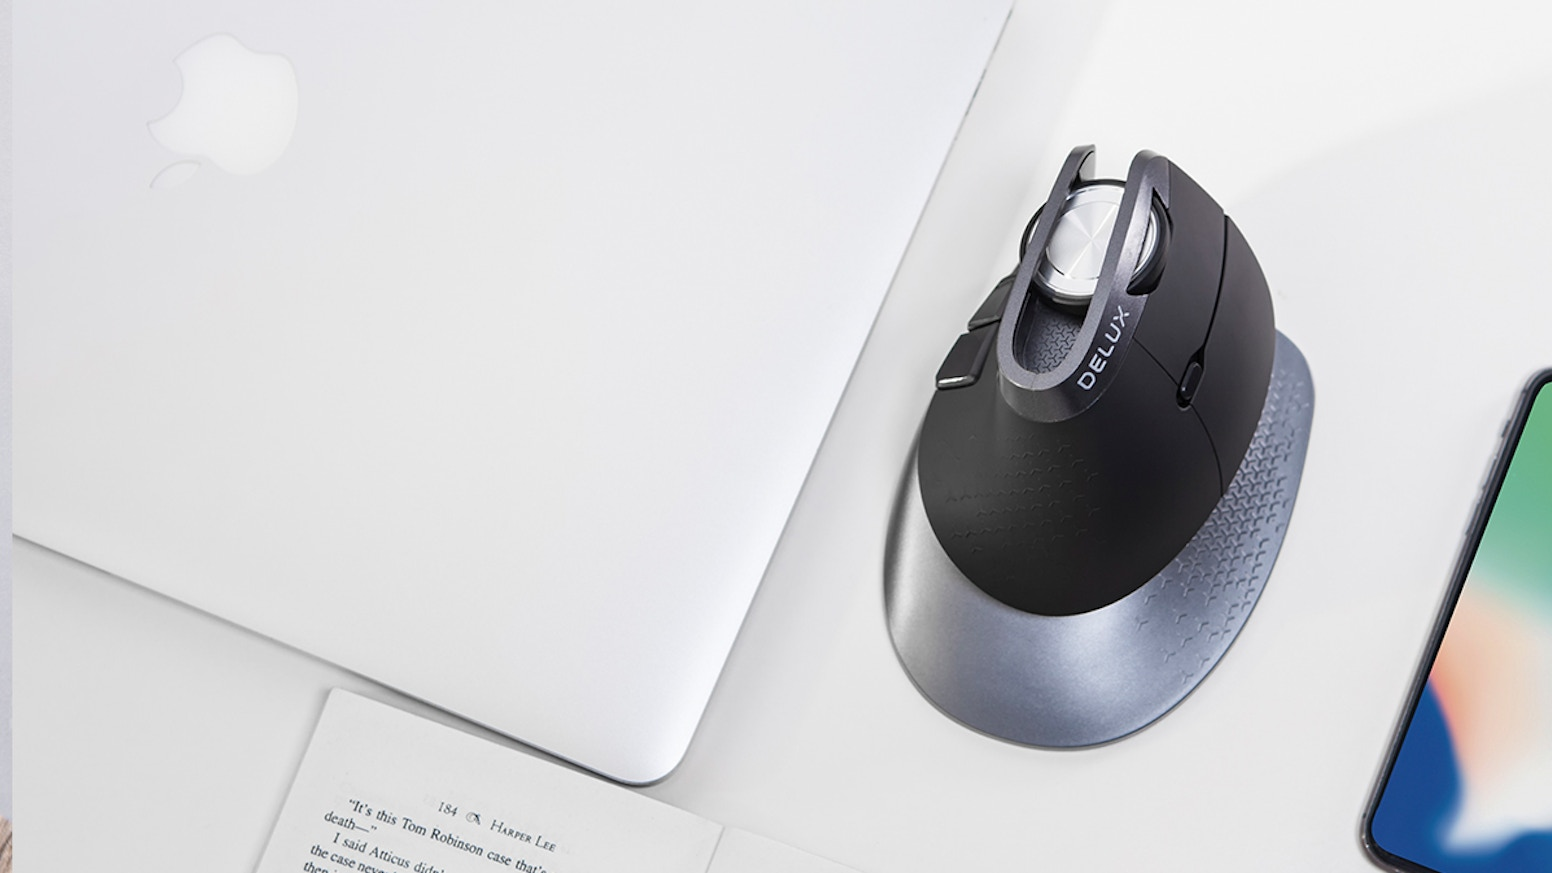 The most ergonomic vertical mouse with adjustable angles to support your wrist and hand.